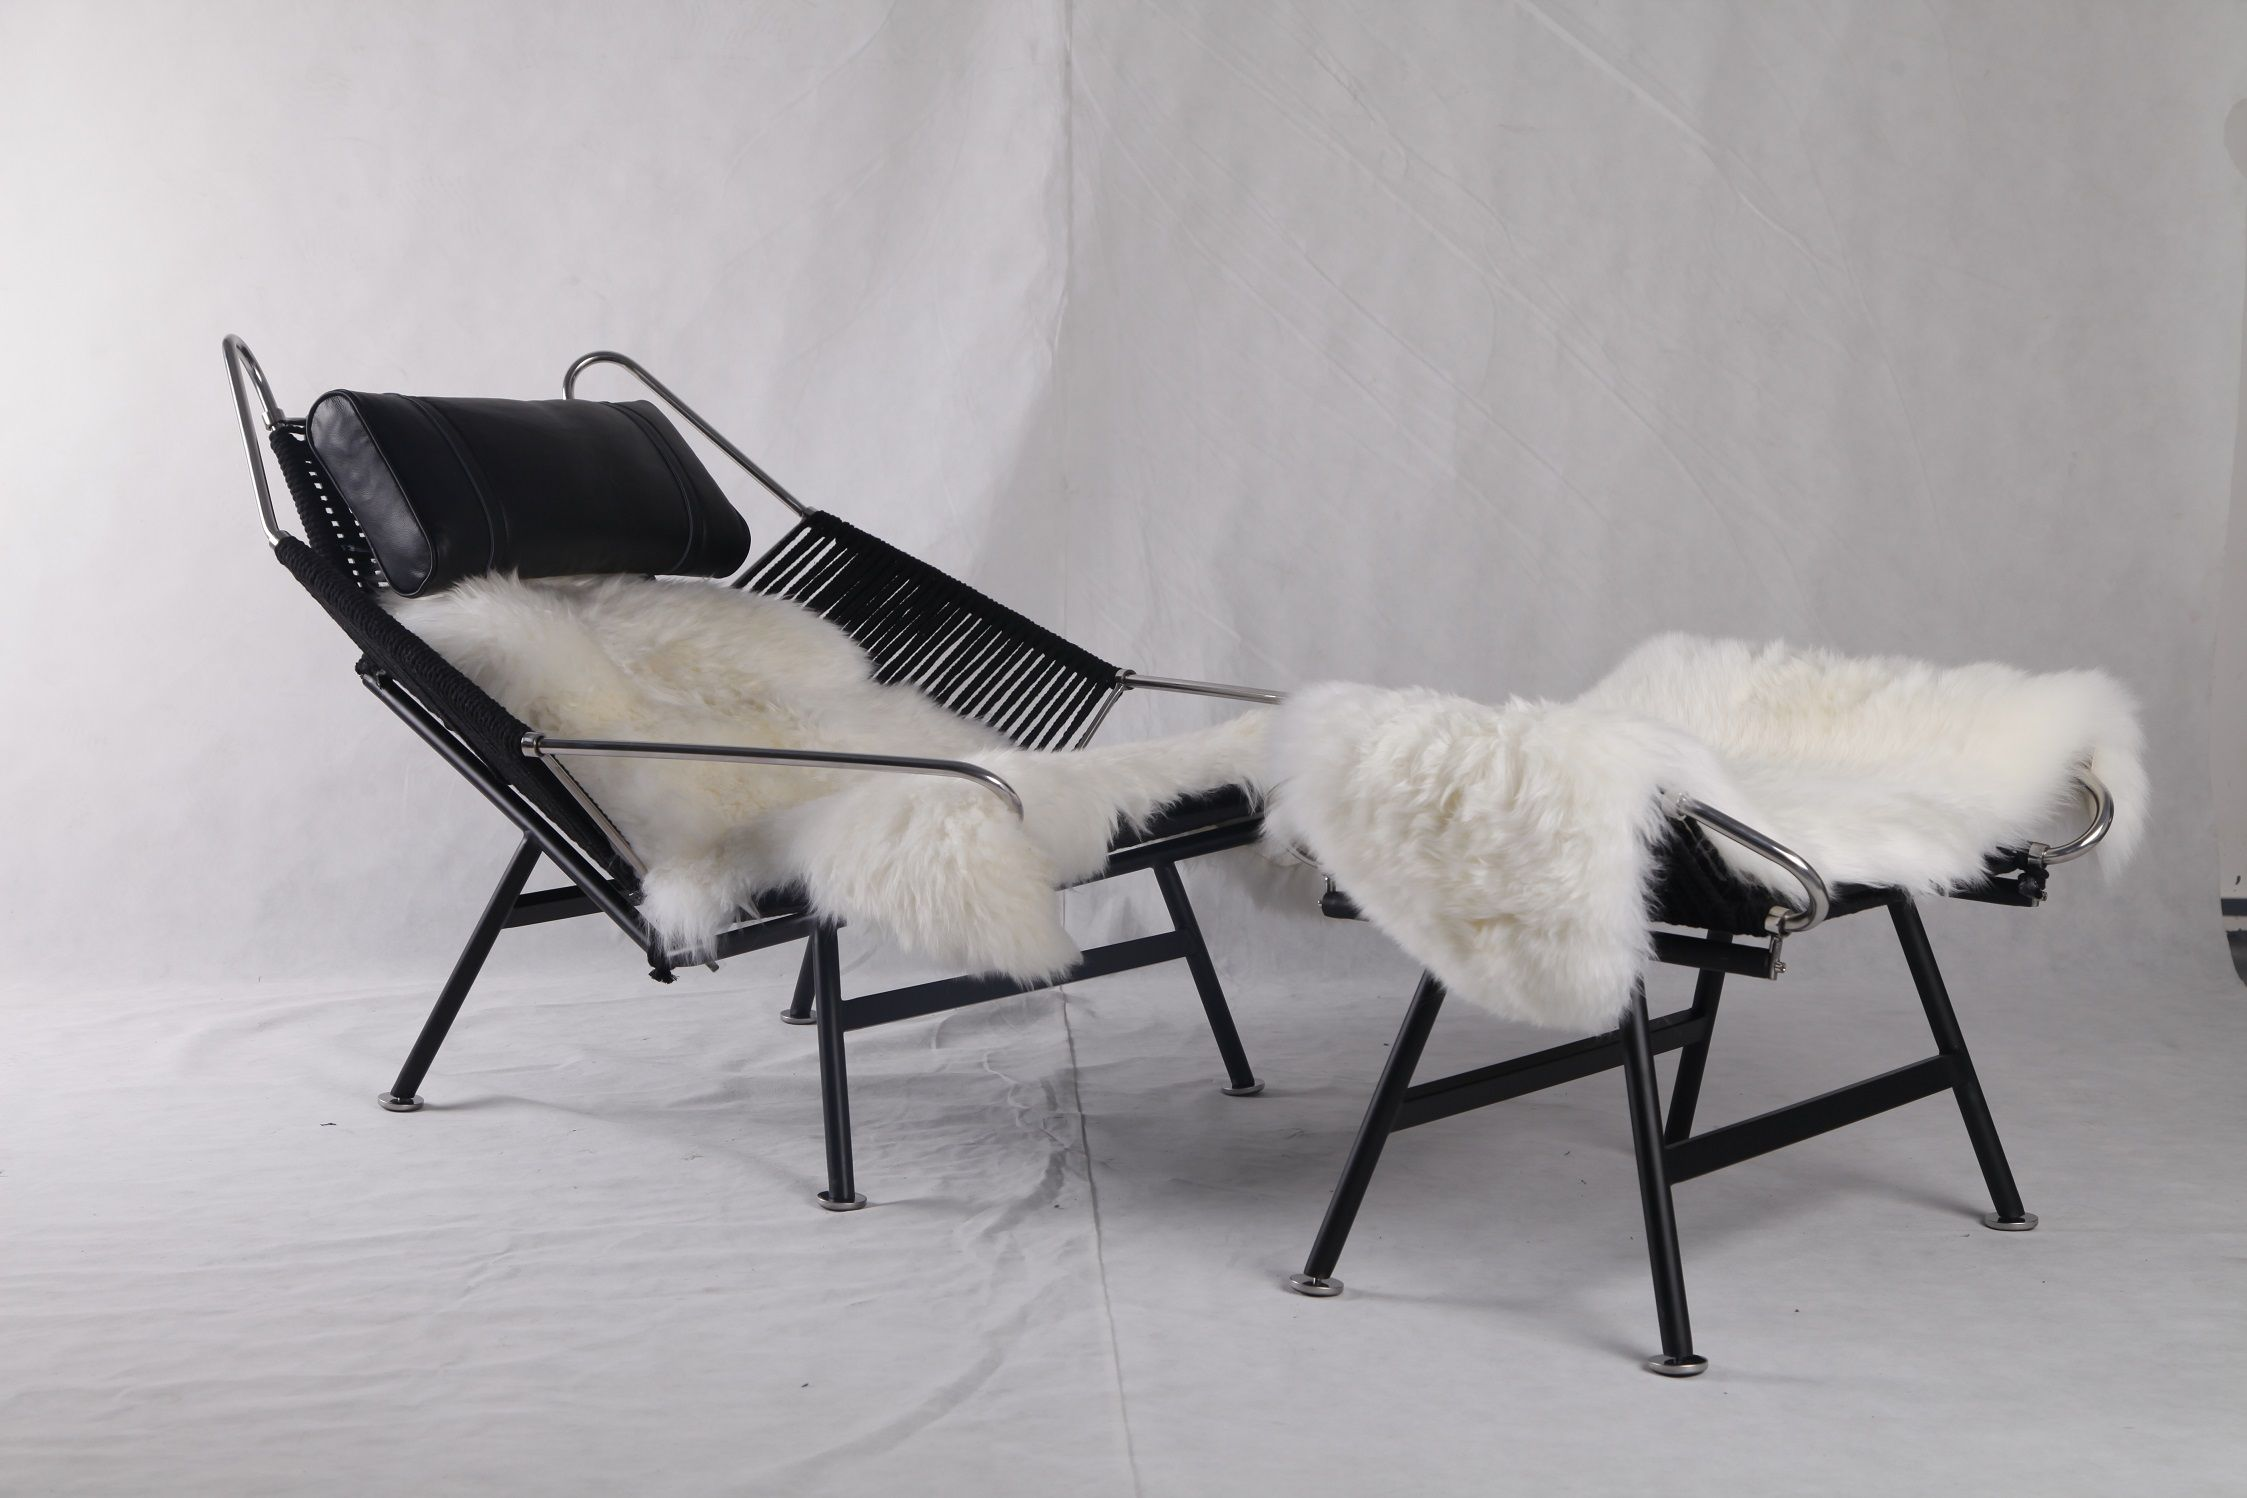 Black Edition Pp225 Hans Wegner Flag Halyard Chair Replica The Chair Come With Black Rope Legs And Pillows Looks Ver Chair Butterfly Chair Modern Lounge Chairs